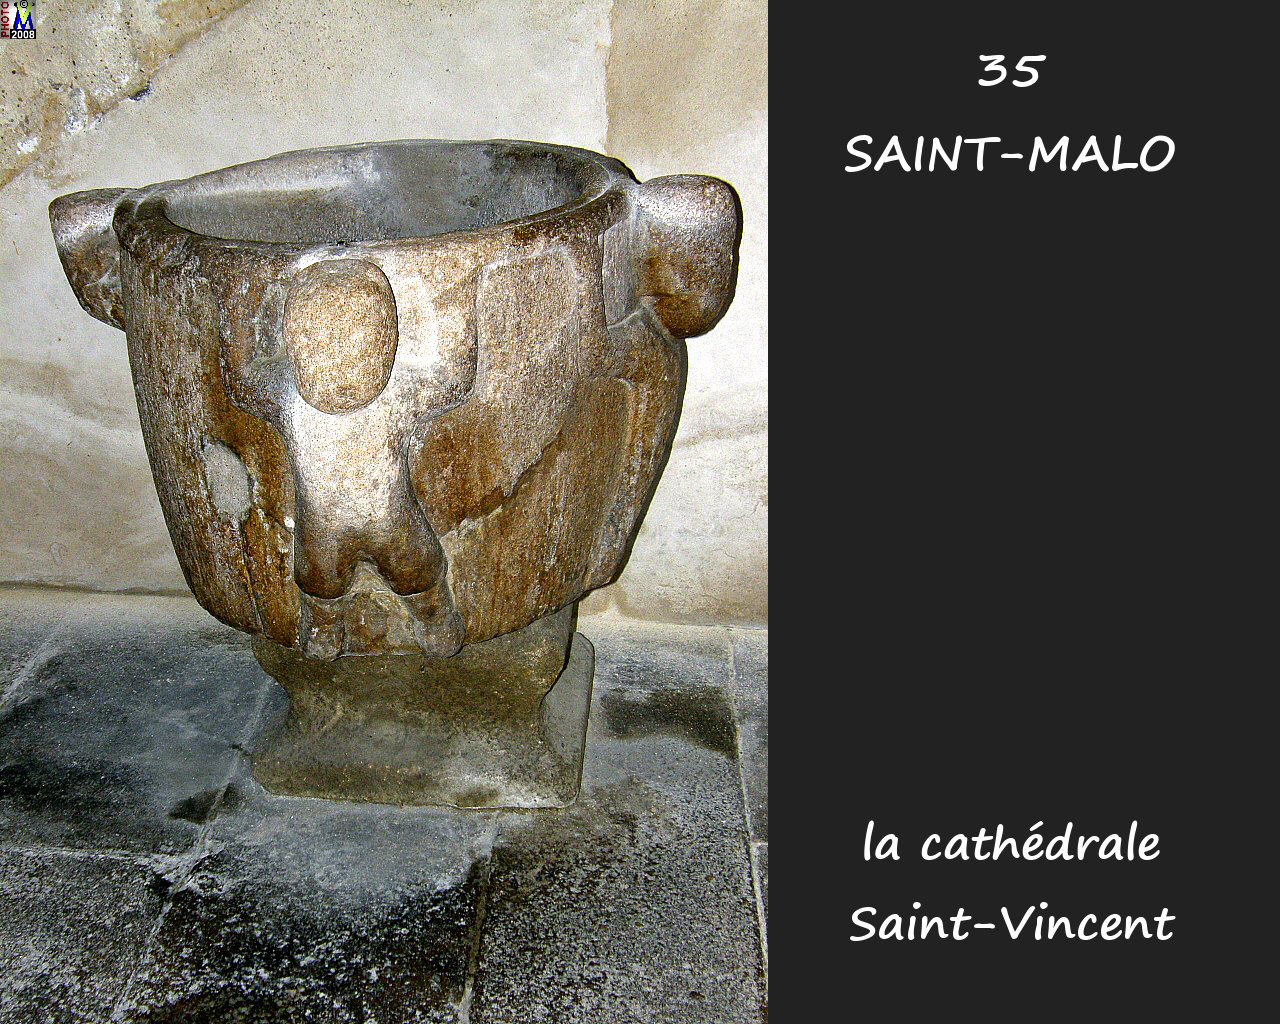 35StMALO_cathedrale_250.jpg